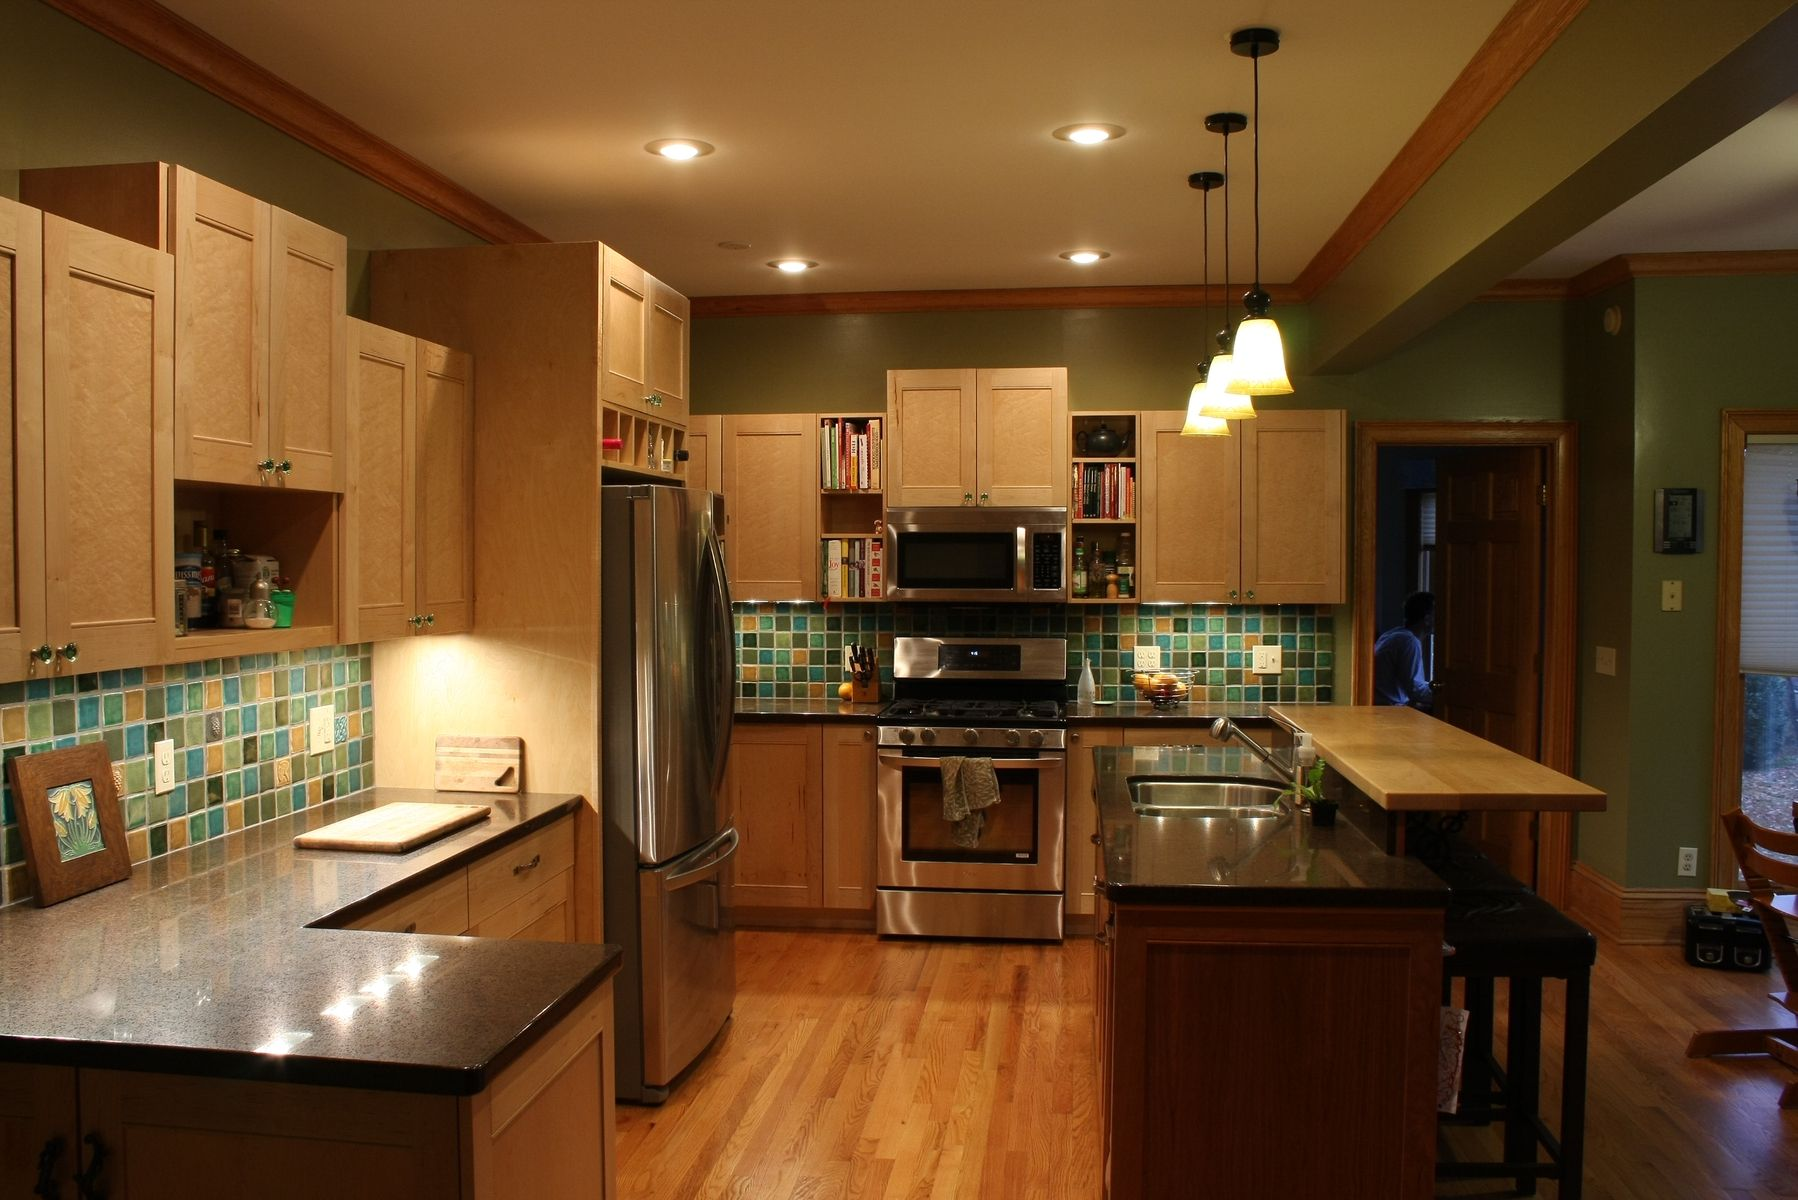 Custom birds eye maple kitchen cabinets by cris bifaro for Custom kitchen remodeling